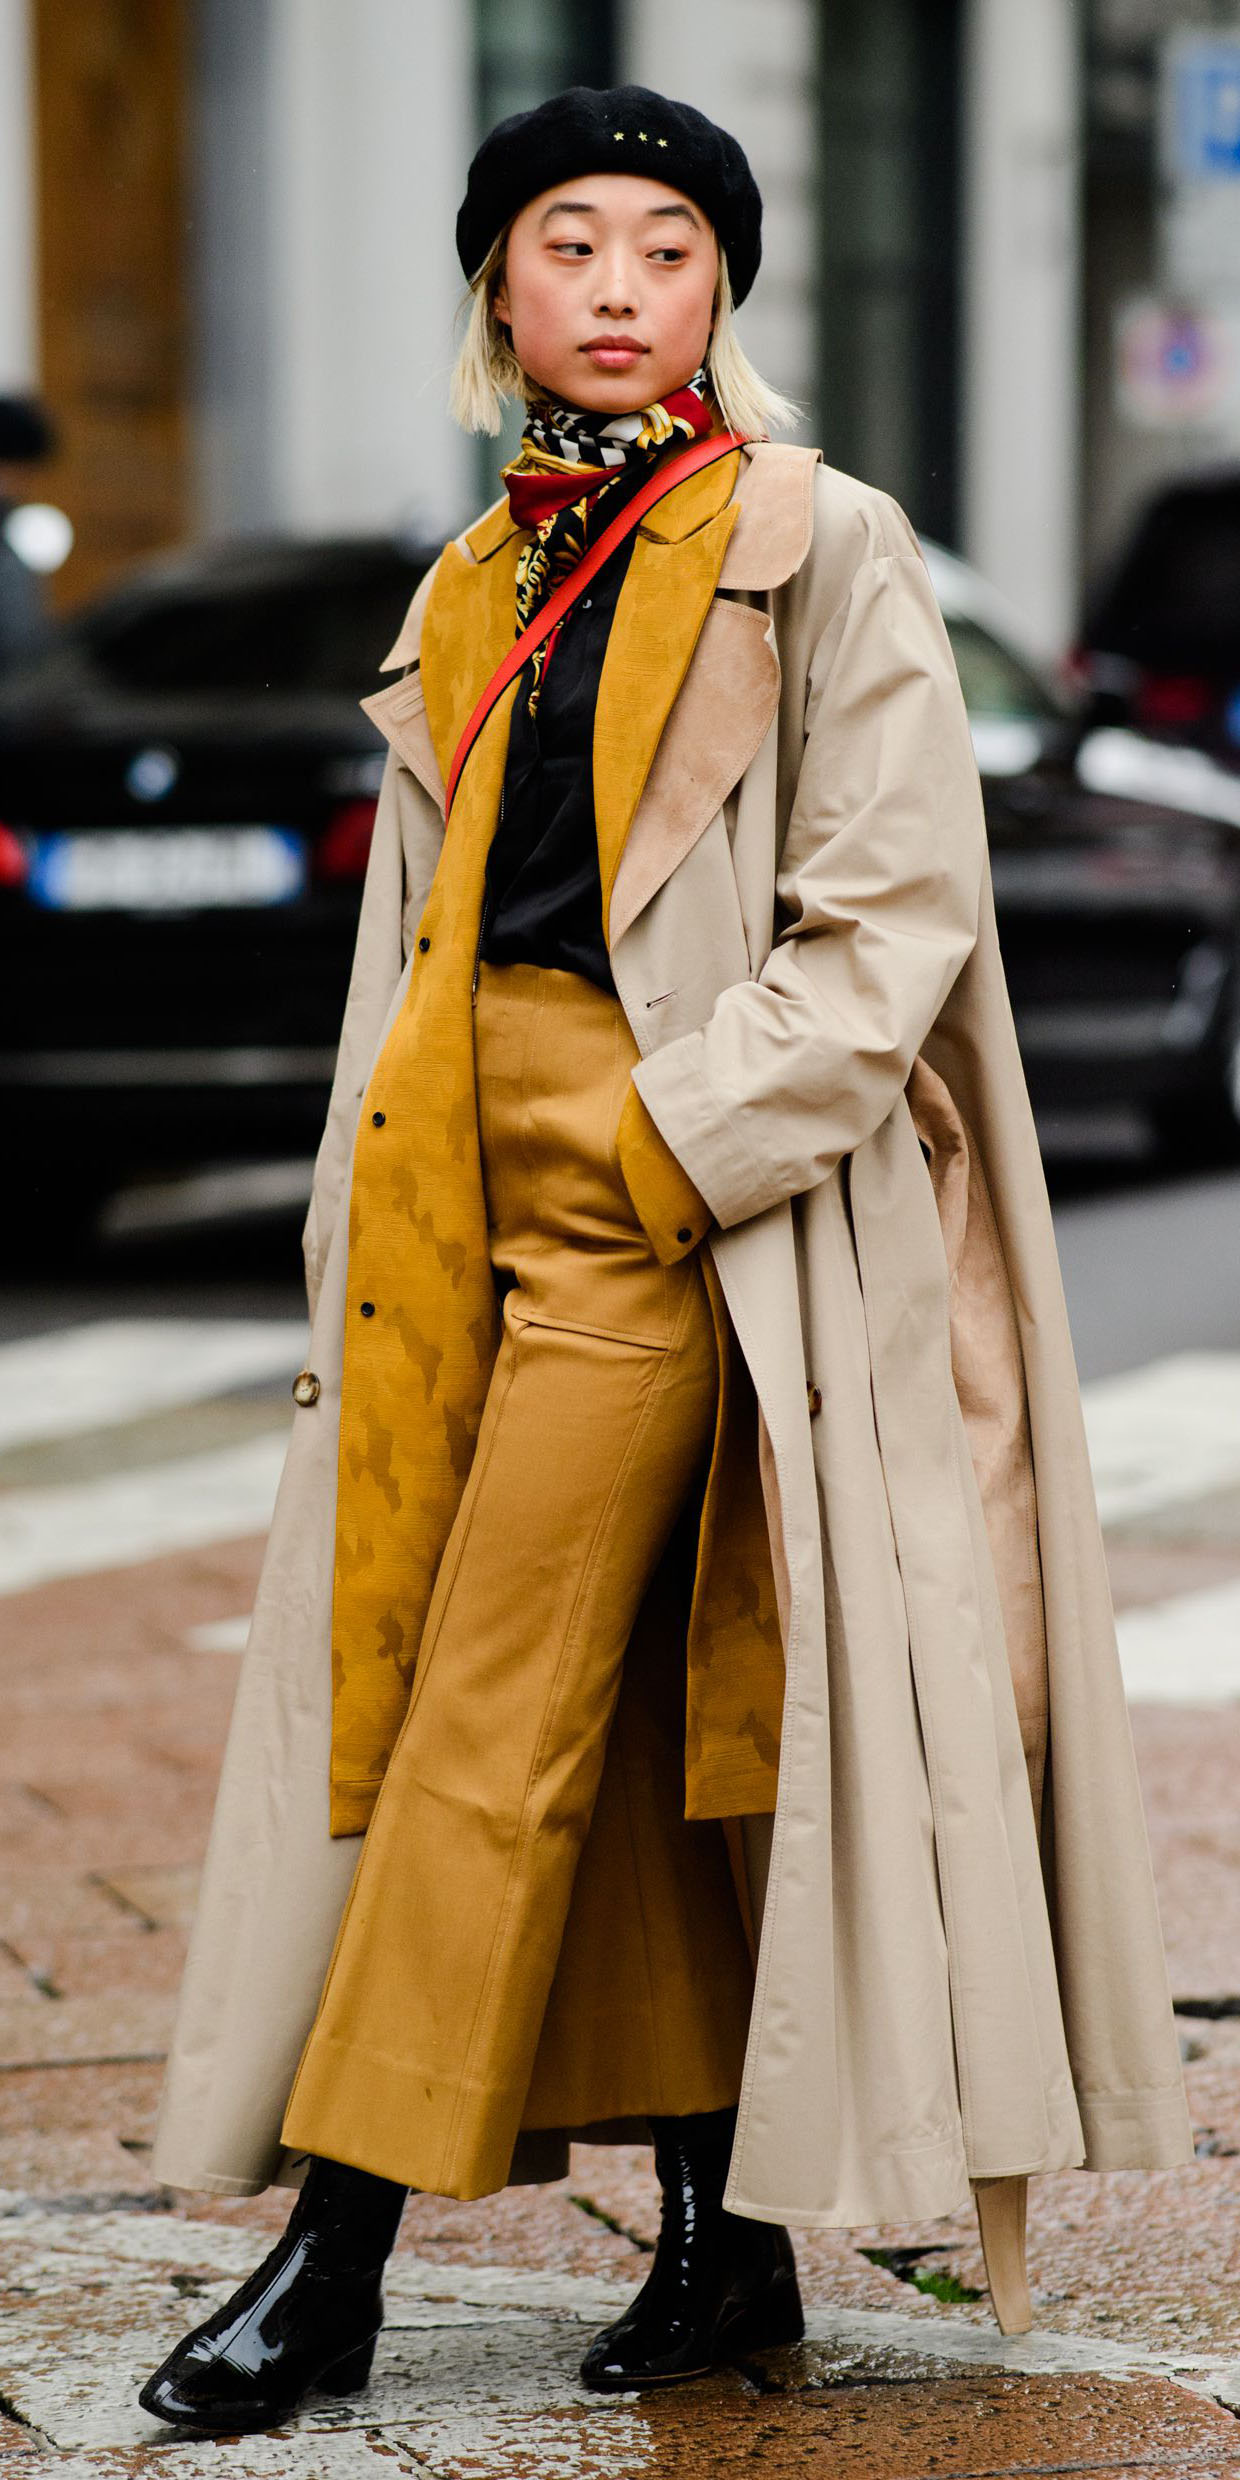 how-to-style-yellow-culottes-pants-layer-yellow-jacket-coat-tan-jacket-coat-trench-blonde-bob-hat-beret-black-shoe-booties-fall-winter-fashion-lunch.jpg